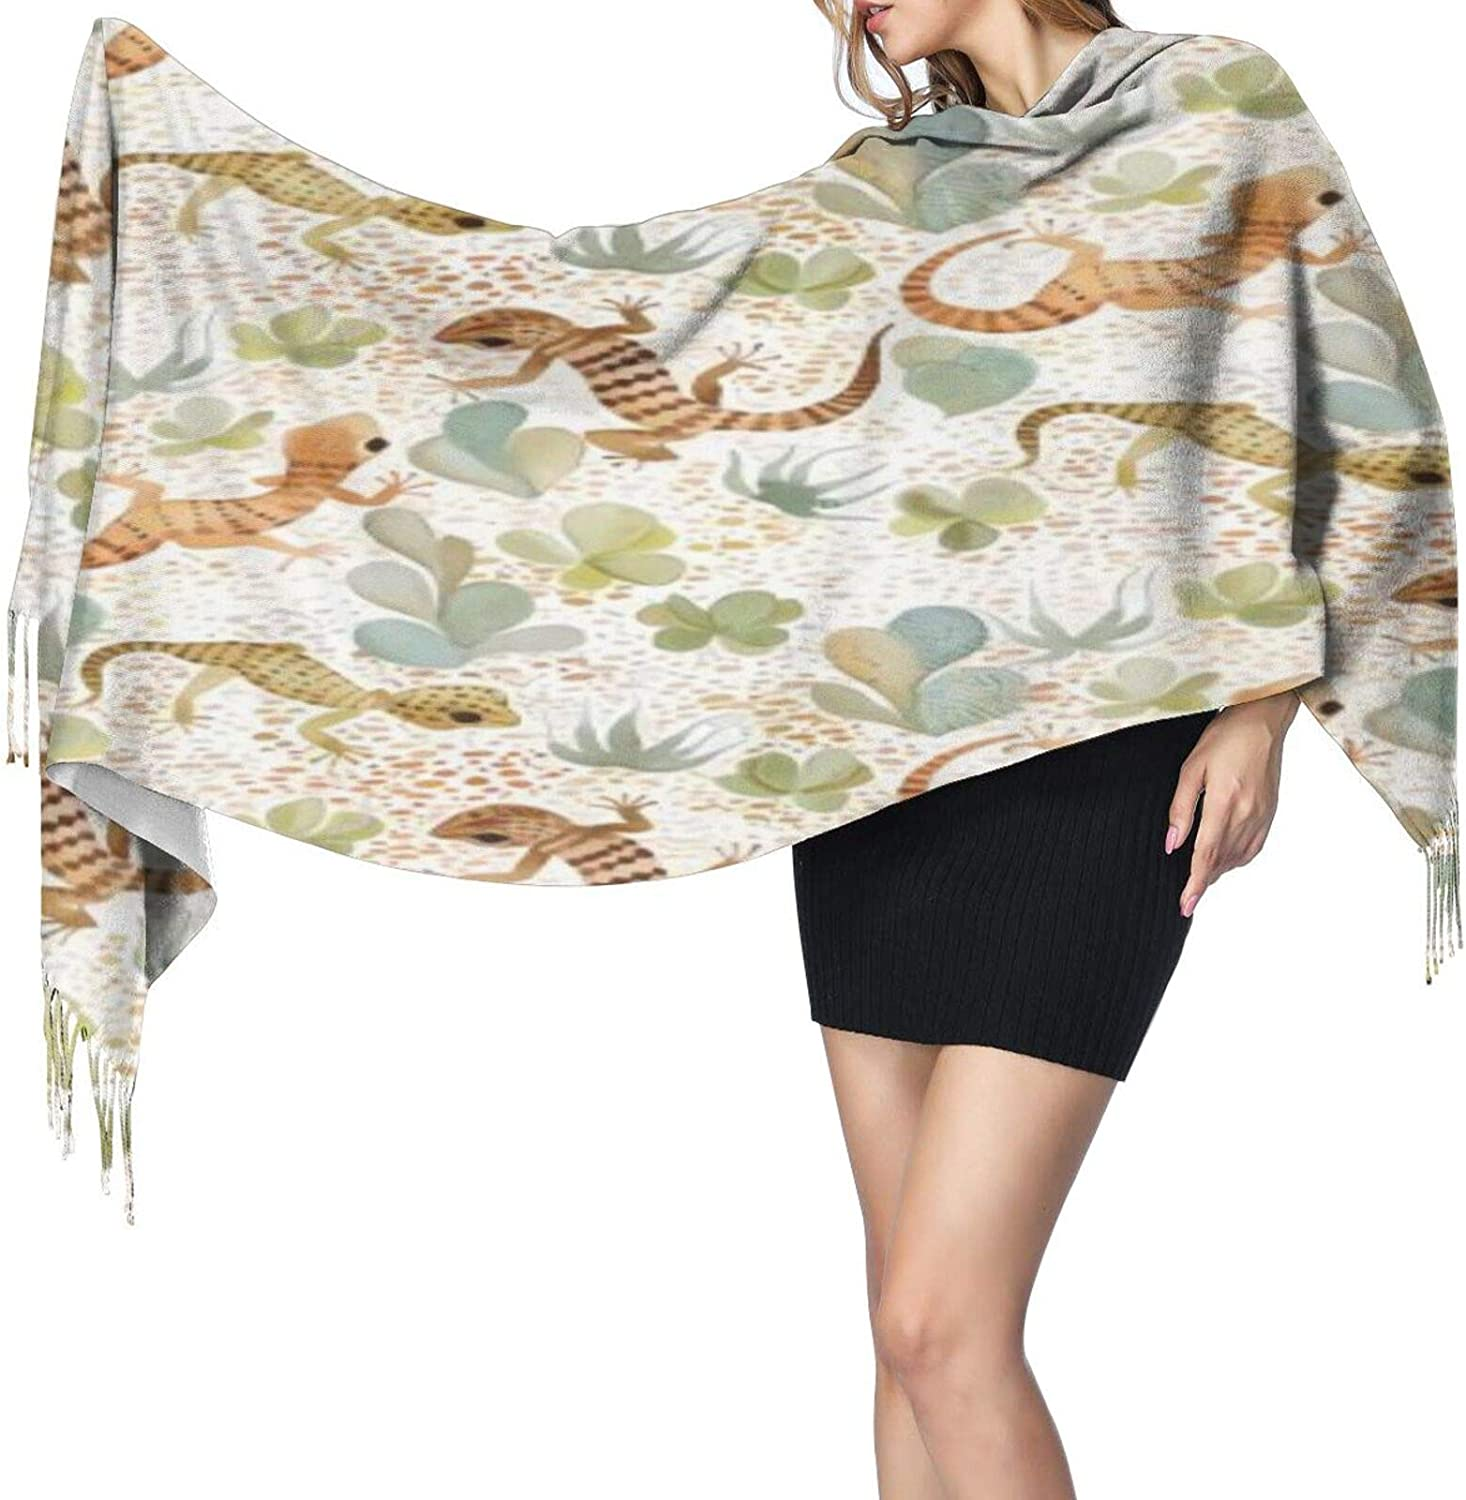 Cashmere fringed scarf Desert Lizard winter extra large scarf